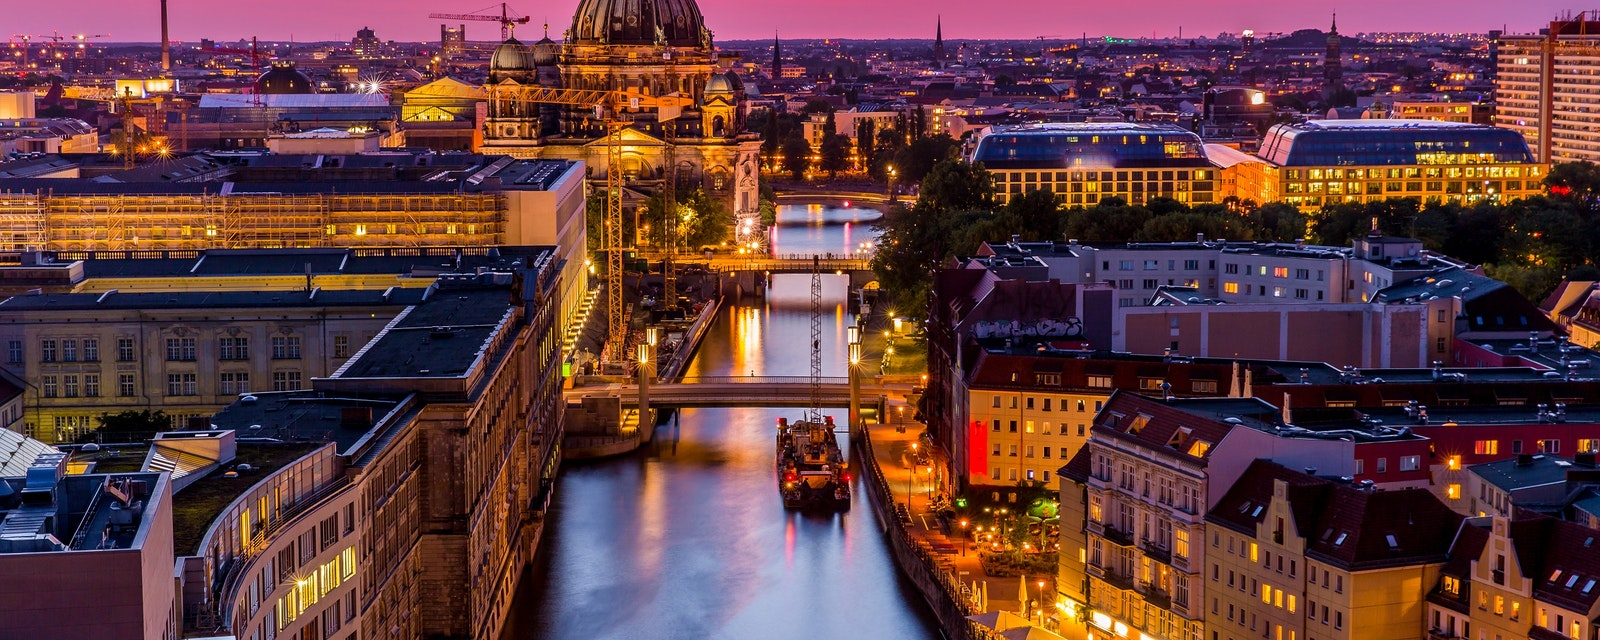 Panoromic,Aerial,View,Of,Berlin,Skyline,With,Famous,Tv,Tower